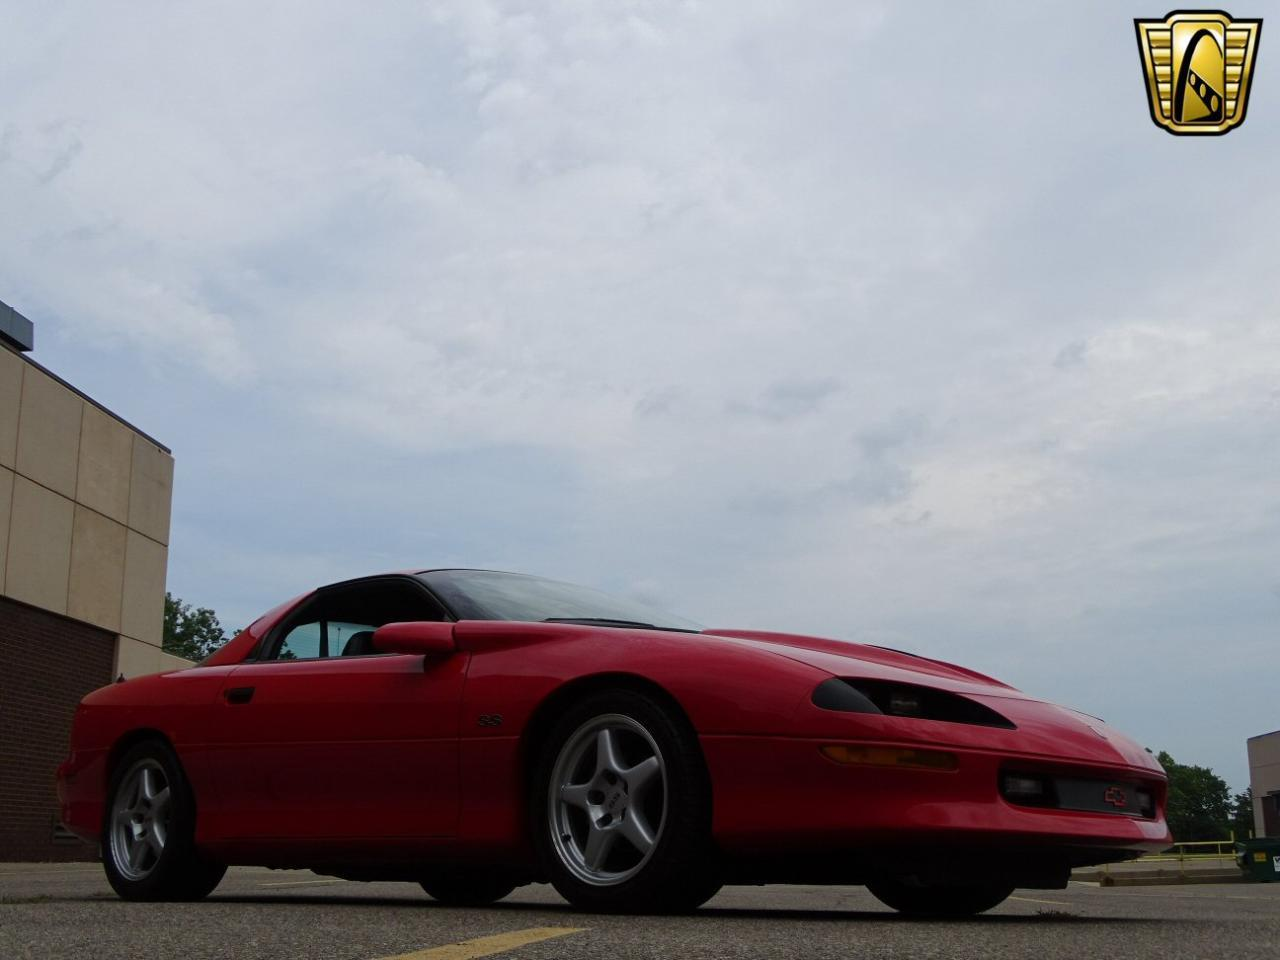 Large Picture of '96 Camaro located in Dearborn Michigan - $13,595.00 Offered by Gateway Classic Cars - Detroit - LDUP